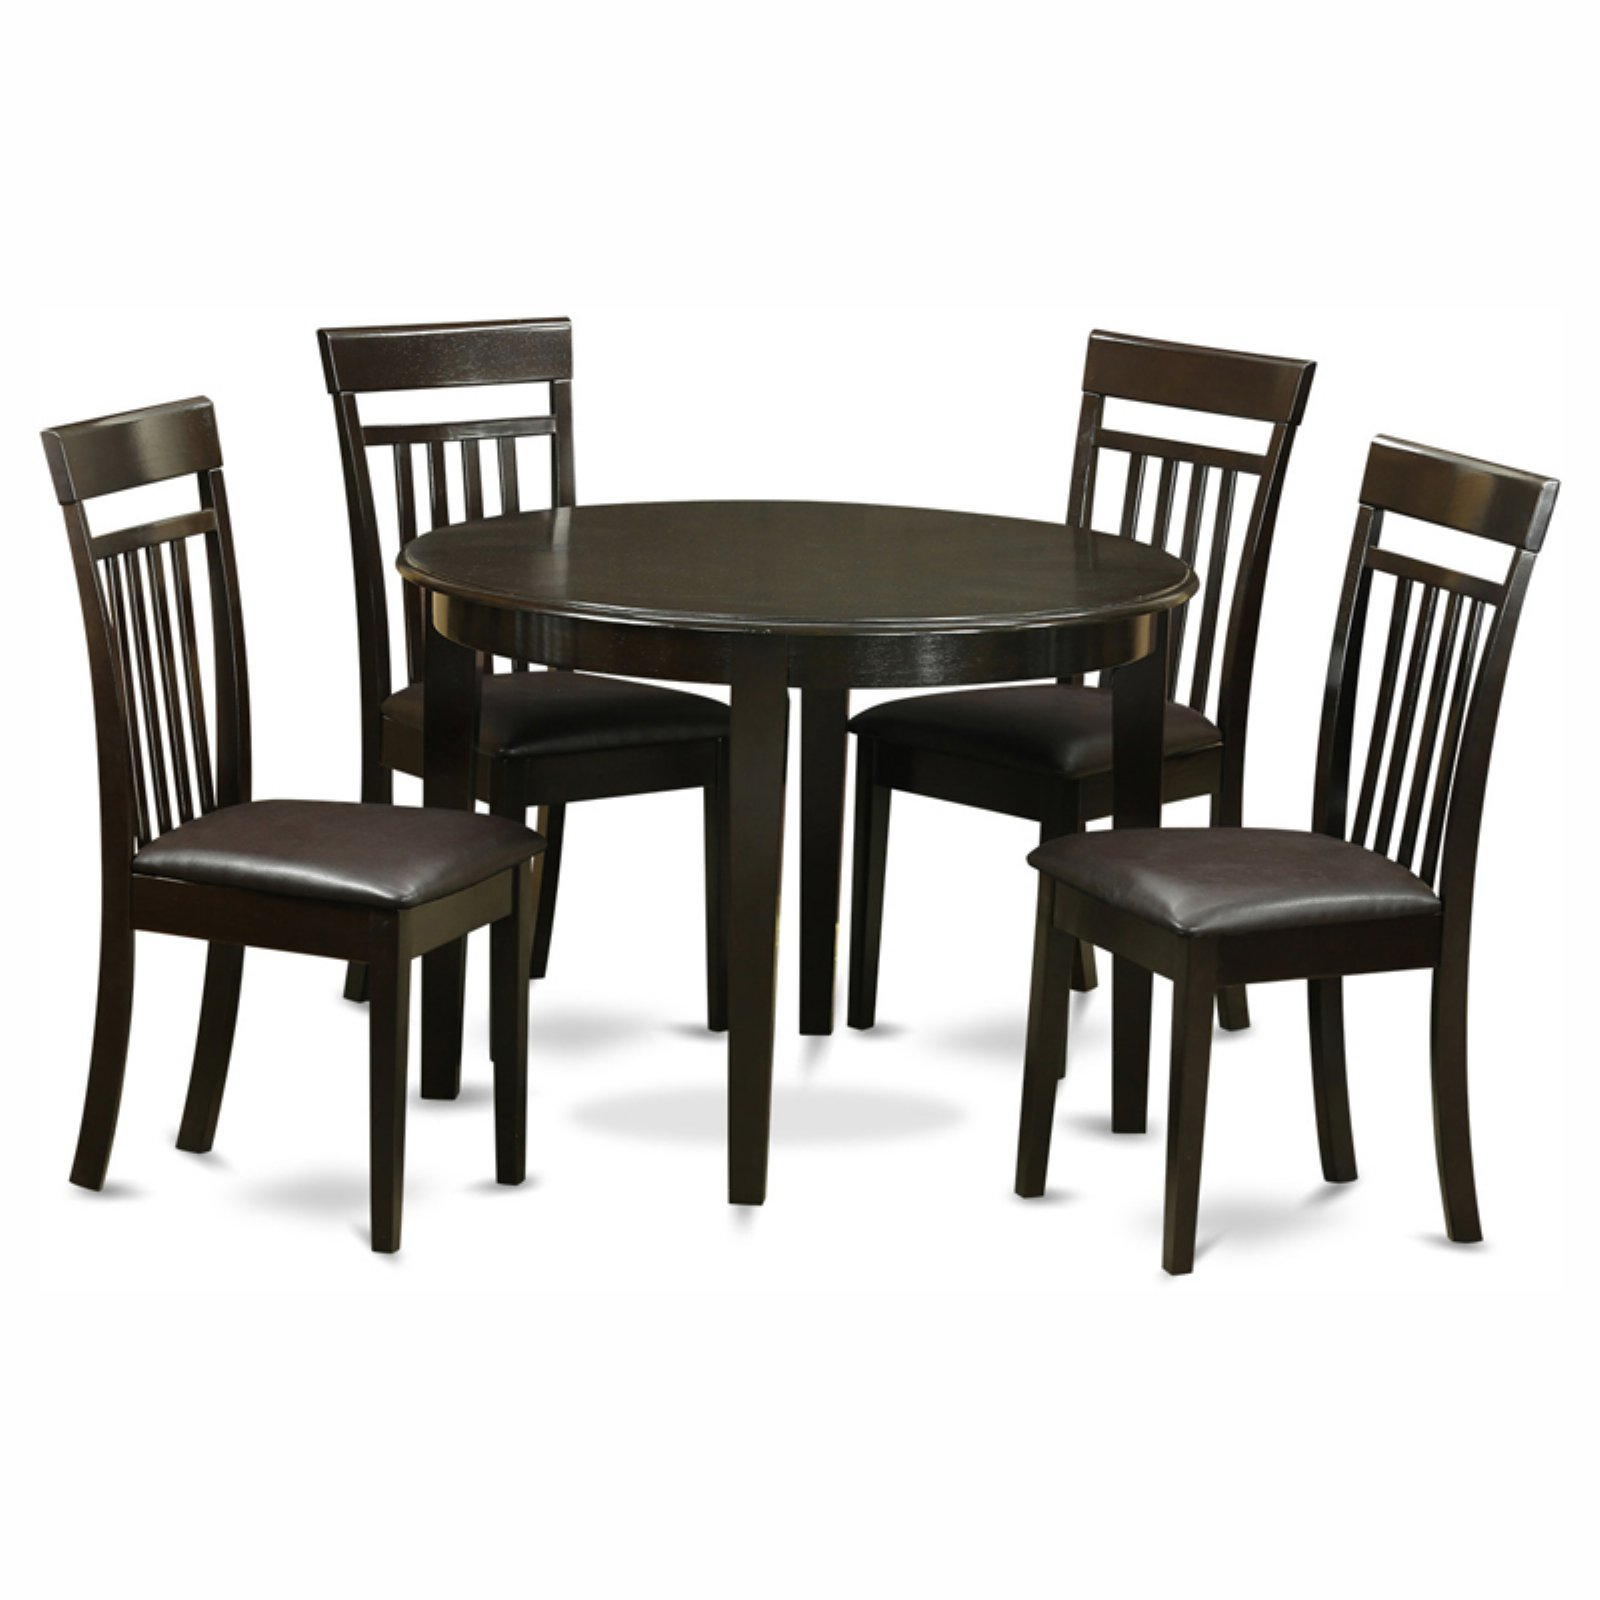 East West Furniture Boston 5 Piece Round Dining Table Set with Capris Faux Leather Seat Chairs